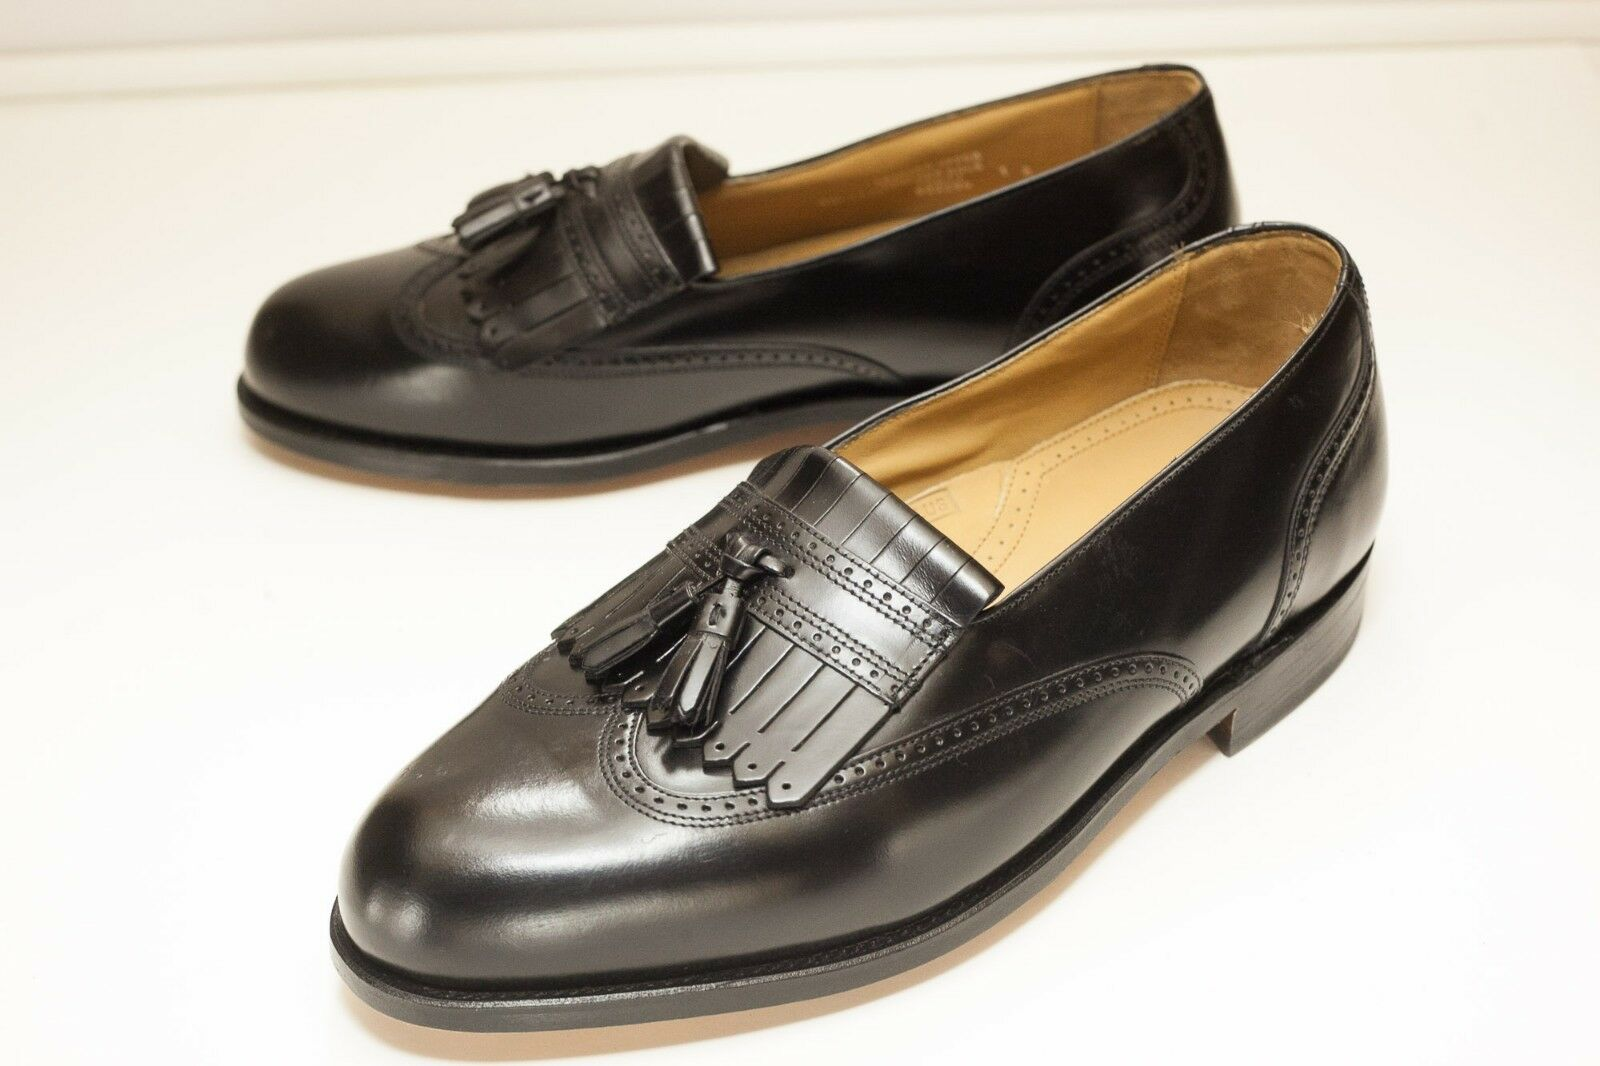 Stafford 9.5 EEE Black Tassel Loafers Men's Dress shoes